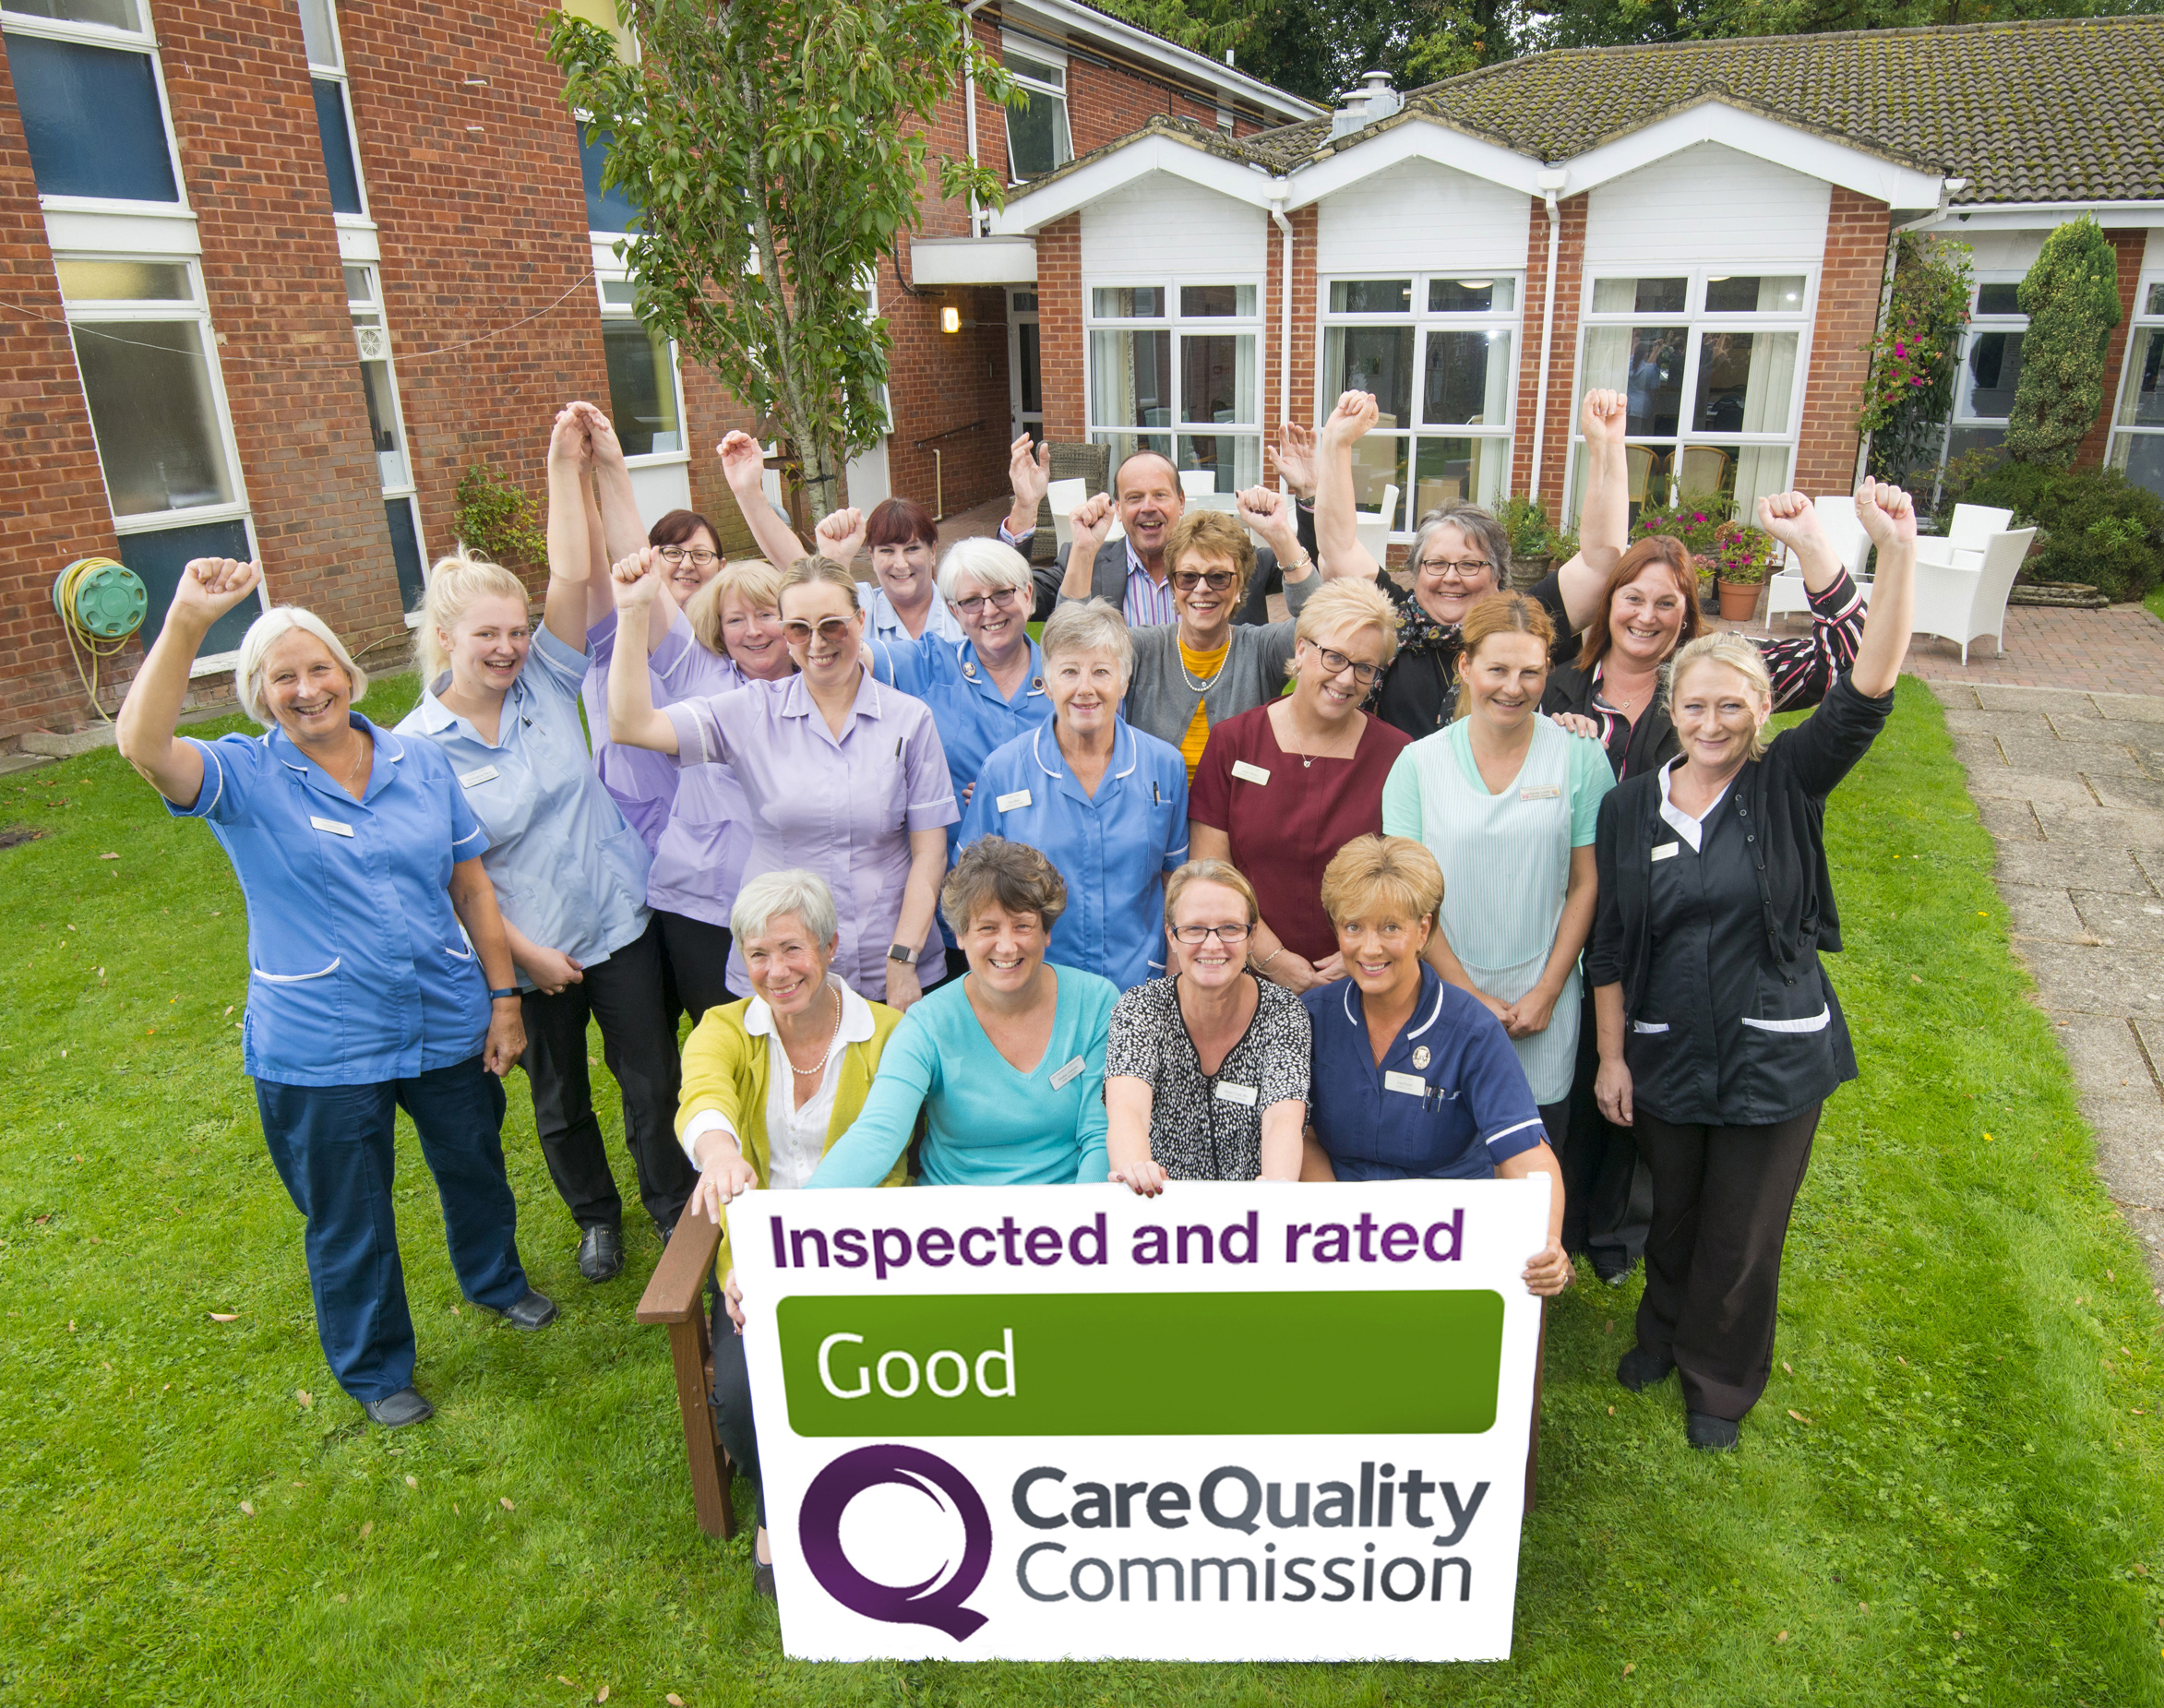 Management and staff celebrate the new CQC rating, in the gardens of Forest Oaks.Seated at the front are, left to right: Jo Husband (Chair of The Board of Trustees), Heather Fortnum (Registered Home Manager), Elaine Croal (Deputy Manager) and Lisa Froud (